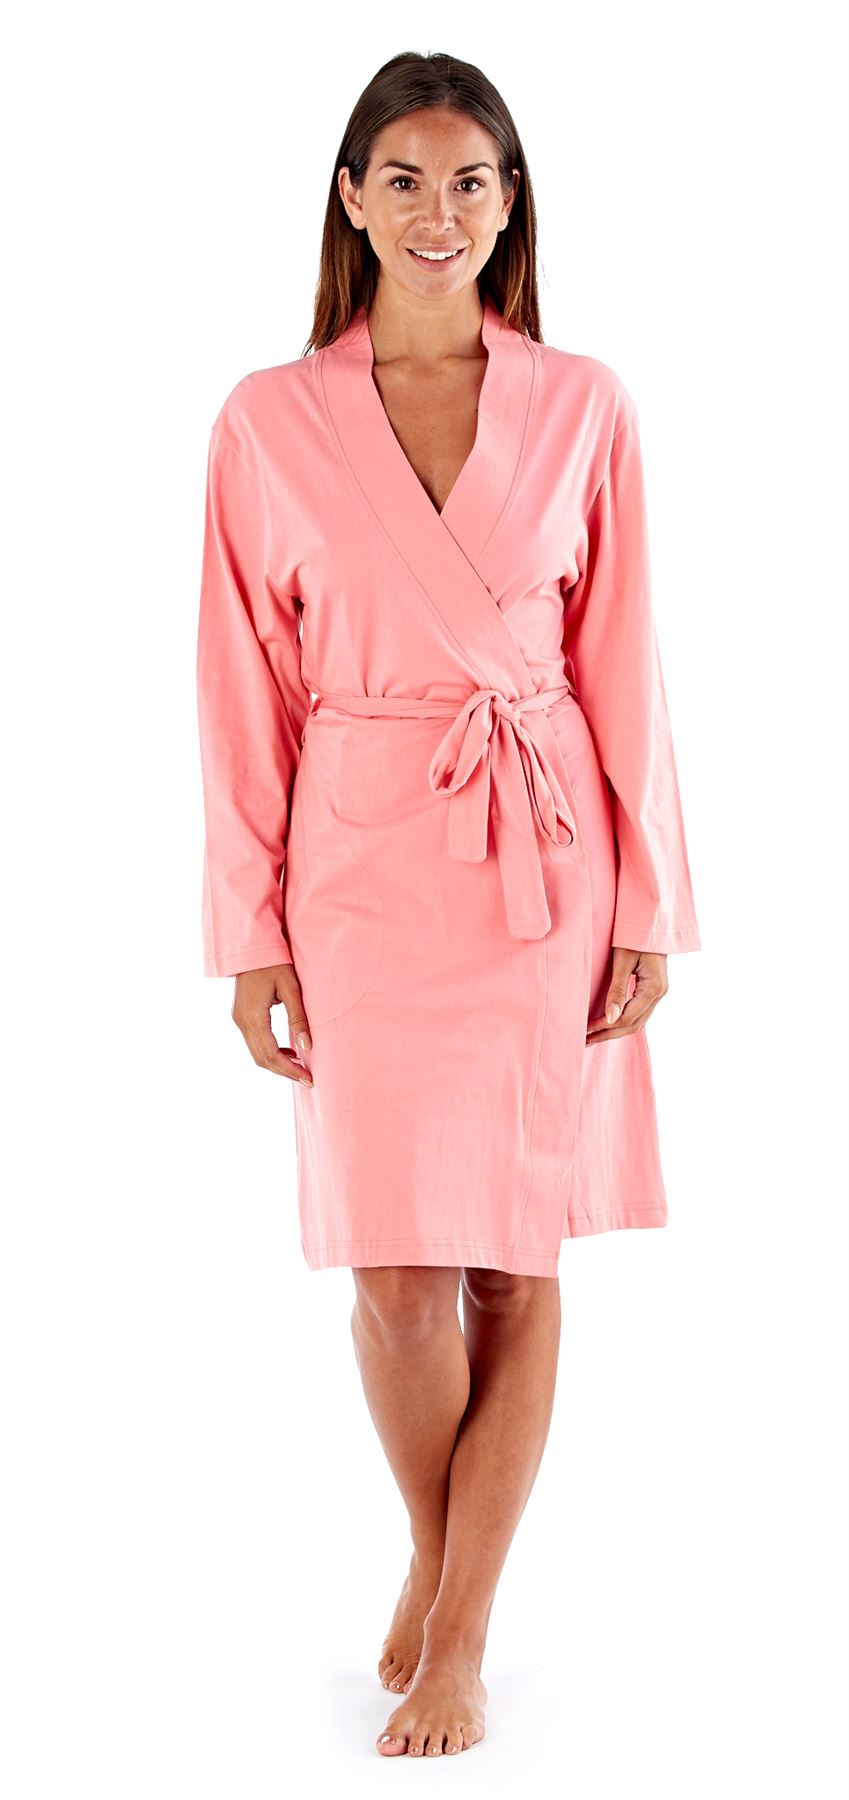 ladies womens robe soft jersey kimono style dressing gown. Black Bedroom Furniture Sets. Home Design Ideas